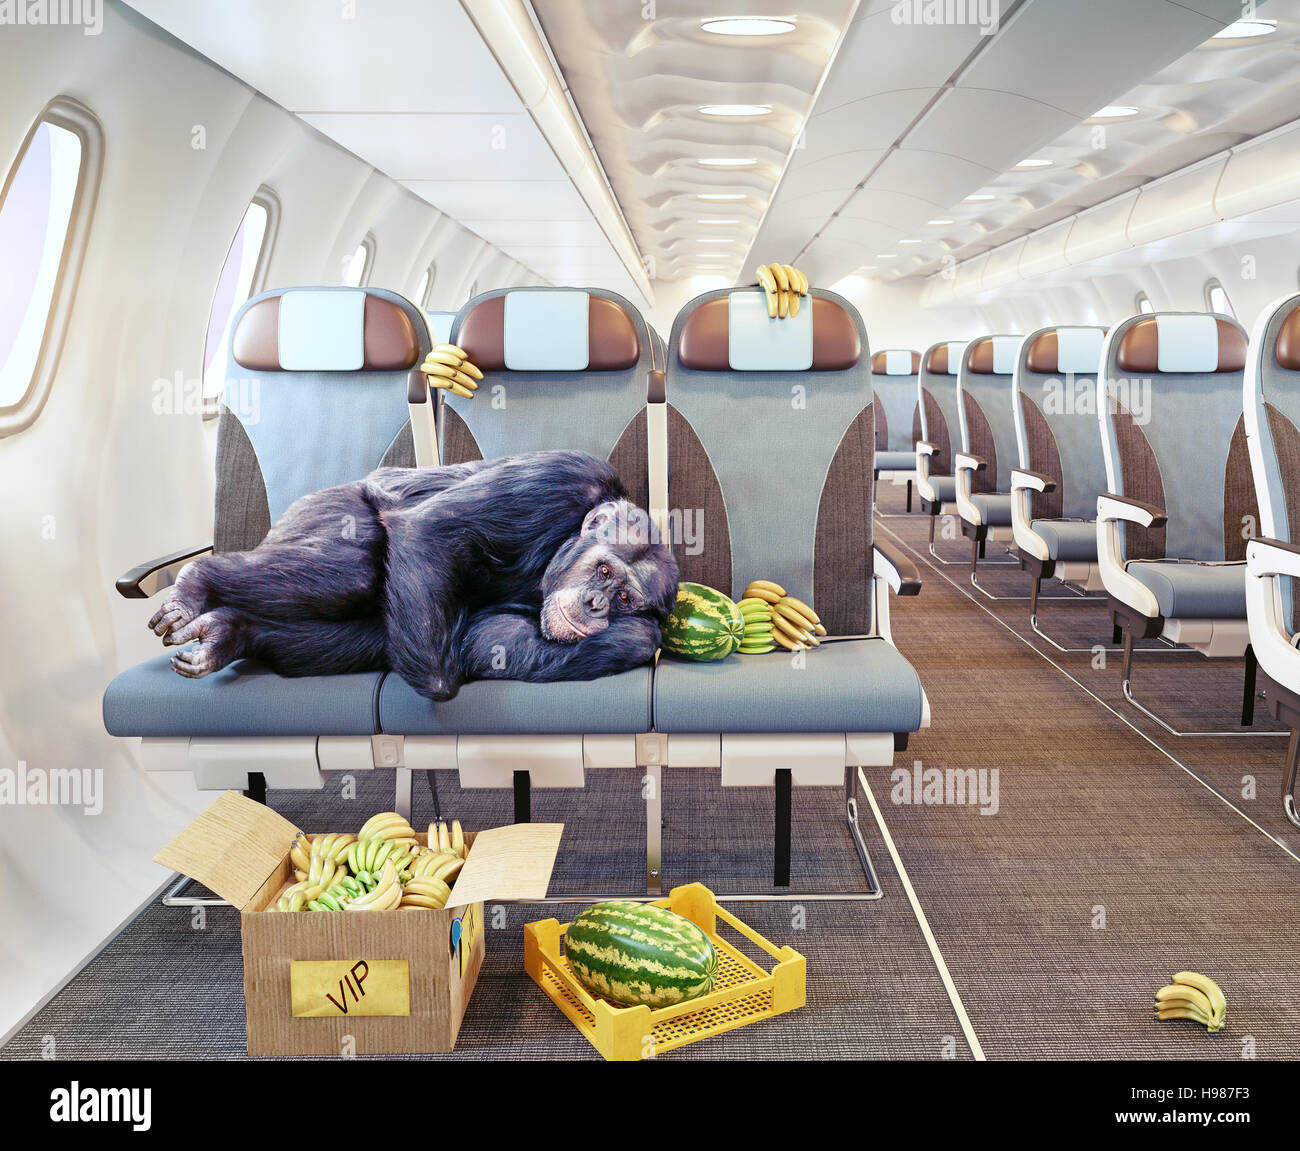 The monkey as the passenger of the airplane. Photo combination concept. - Stock Image